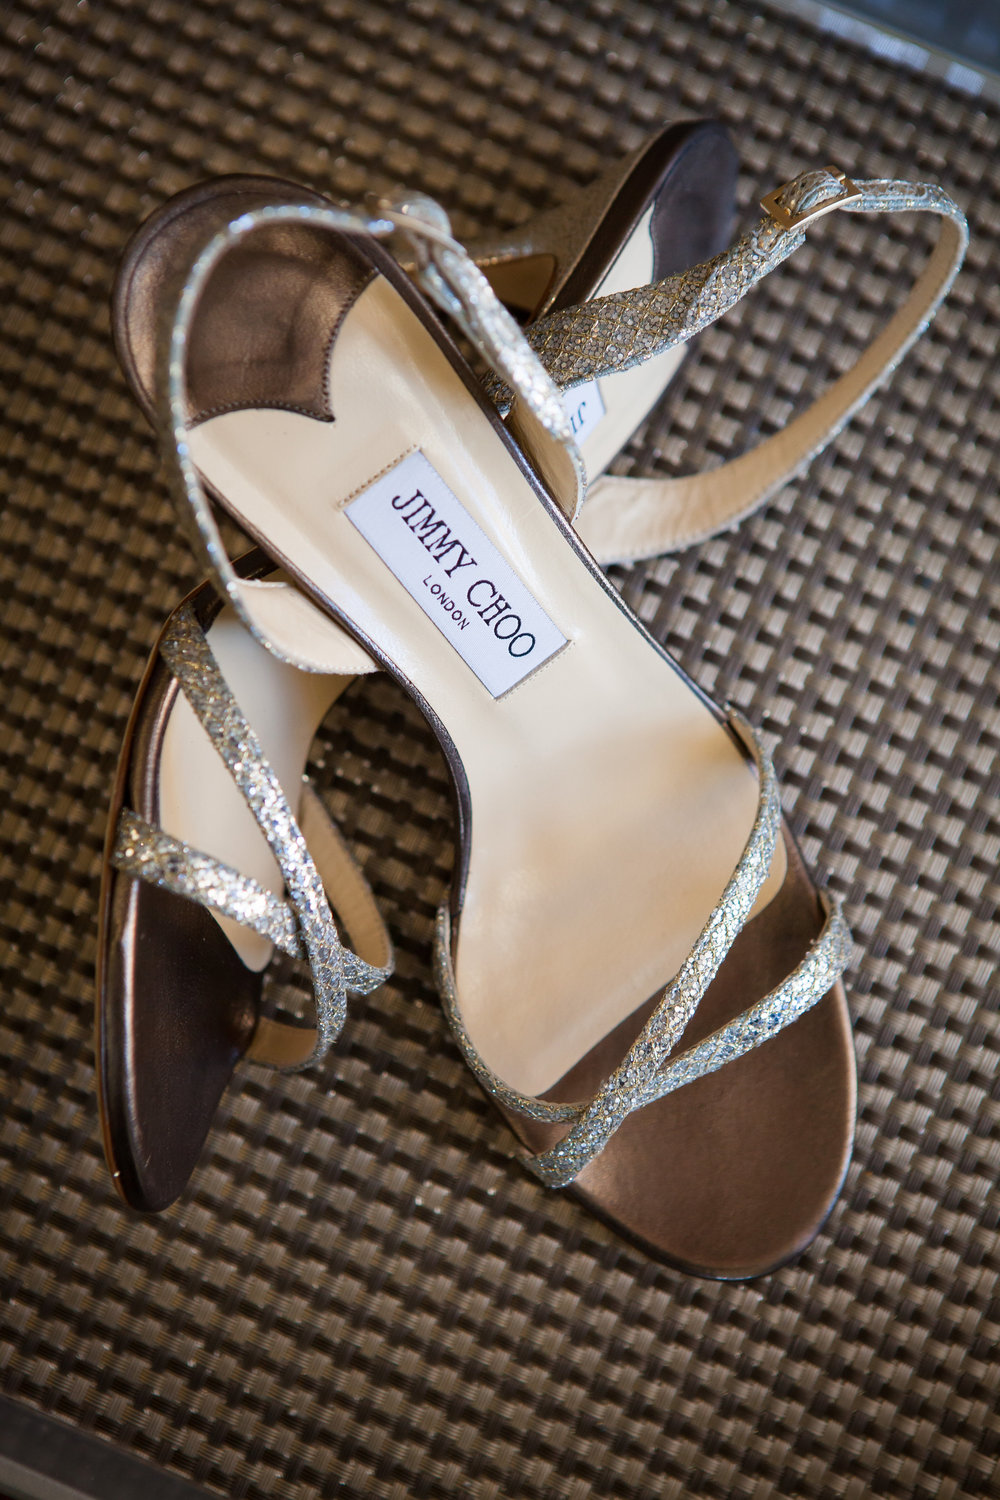 02 Jimmy Choo Wedding Shoes Philadelphia Wedding.jpg